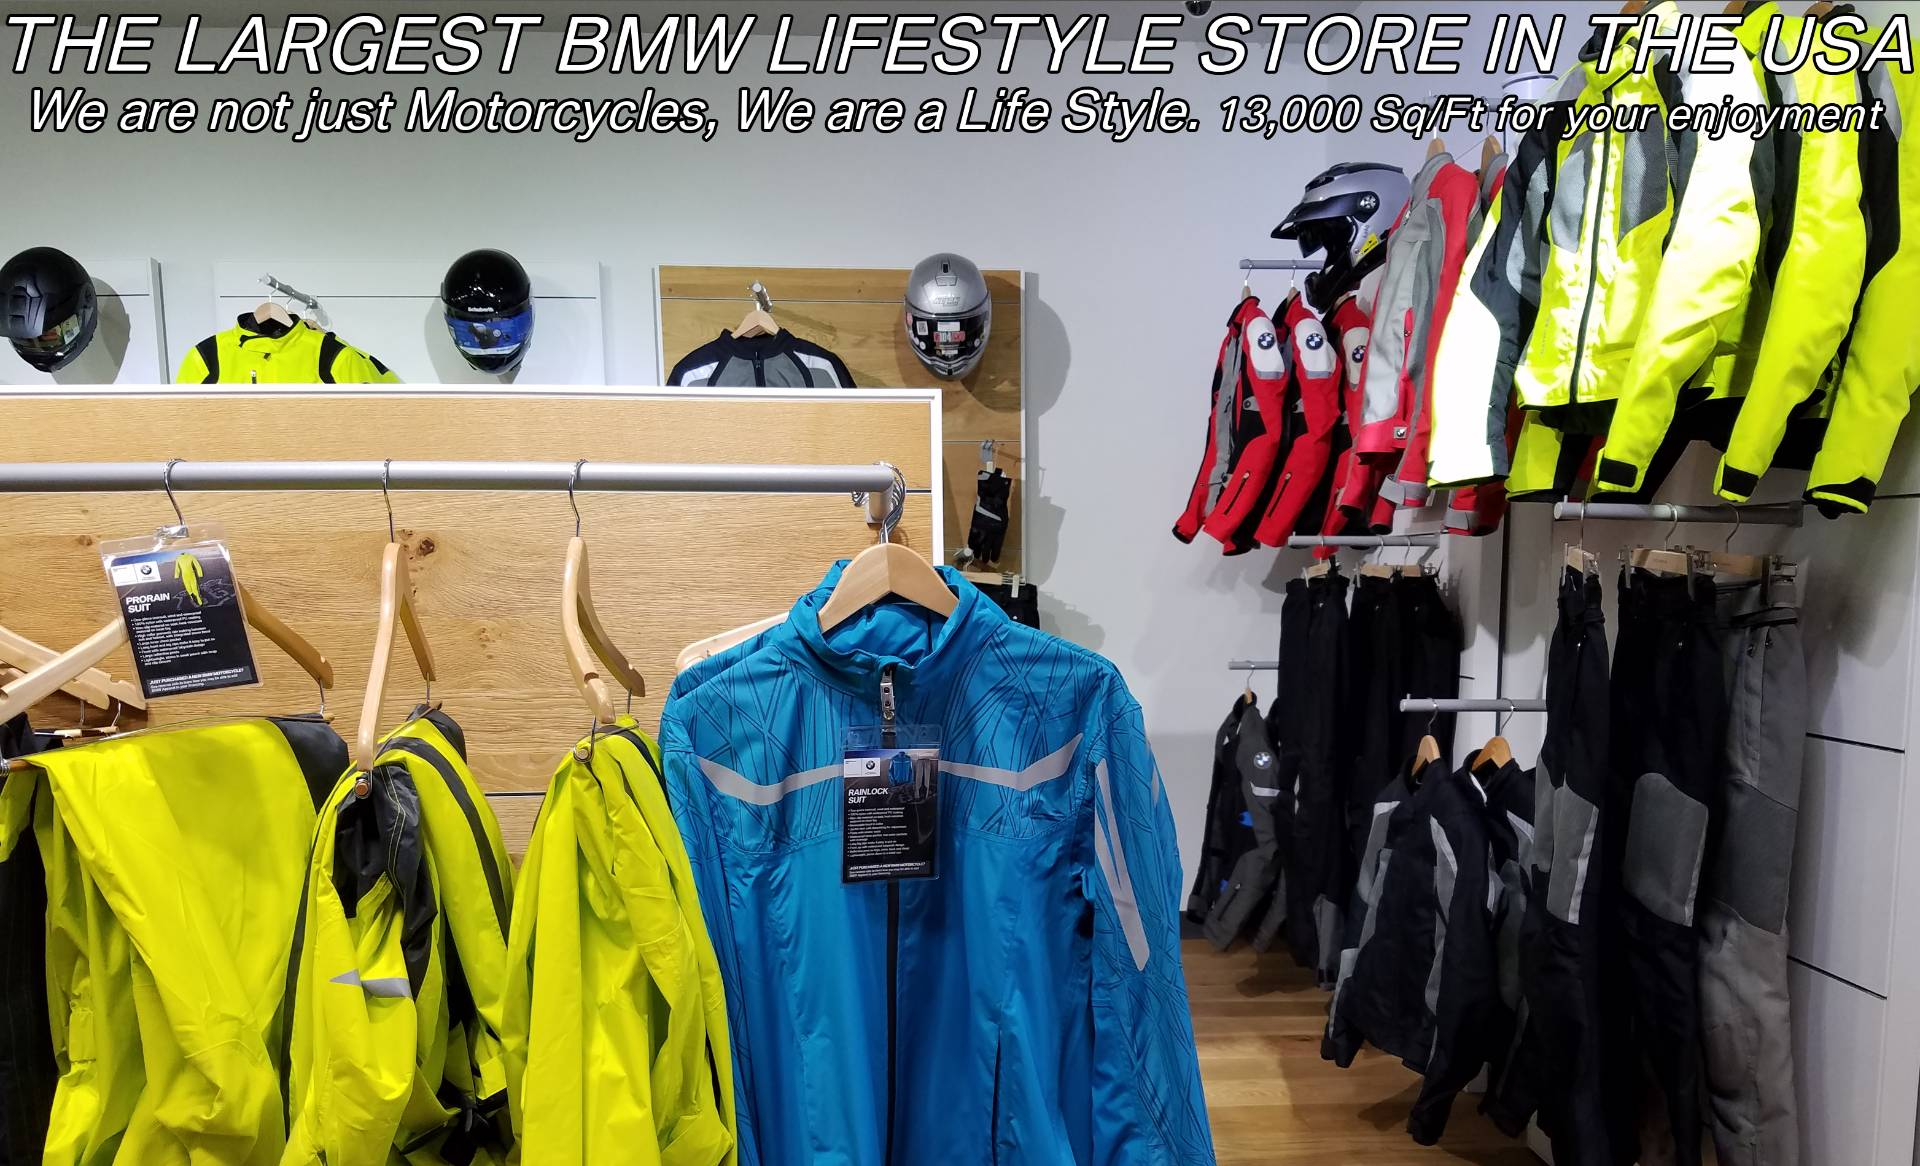 Used 2011 BMW R 1200 GS For Sale, BMW R 1200GS For Sale, Pre-Owned BMW Motorcycle R1200GS, Pre owned BMW Motorcycle, 1200, GS, BMW